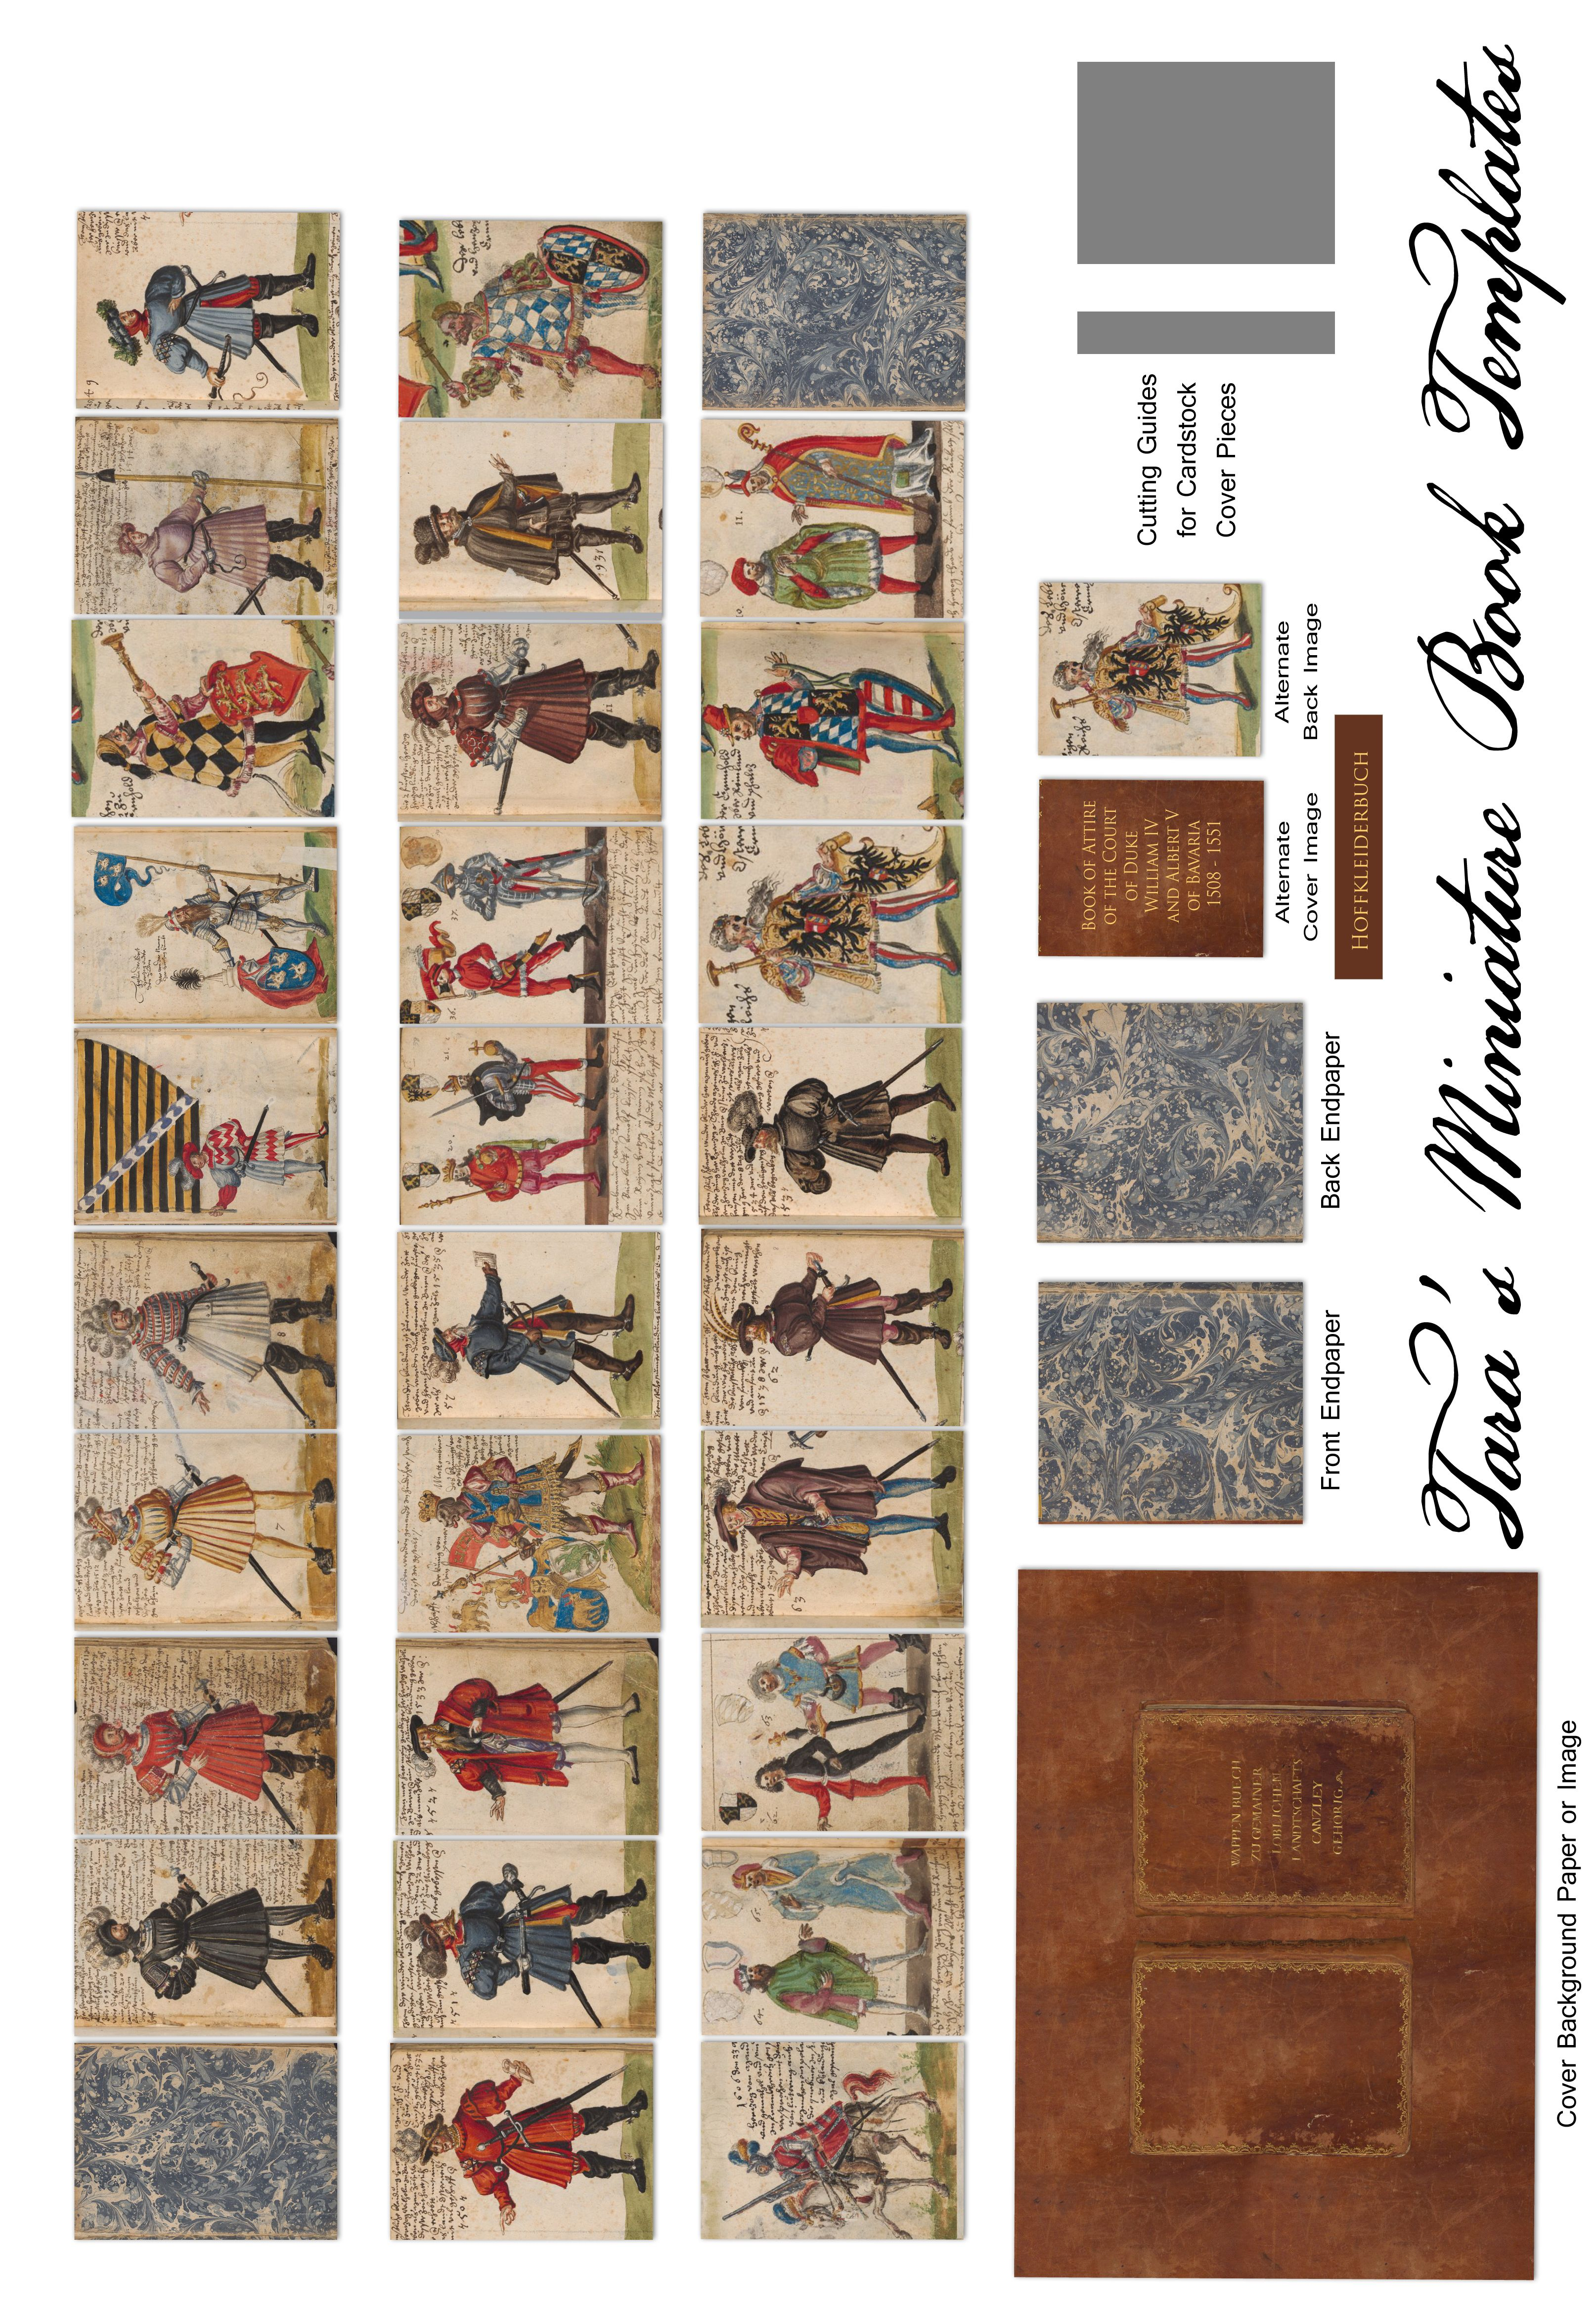 "Free Miniature Dollhouse 1.5"" Book of images from the 16th Century German Hofkleiderbuch (Book of Attire)"